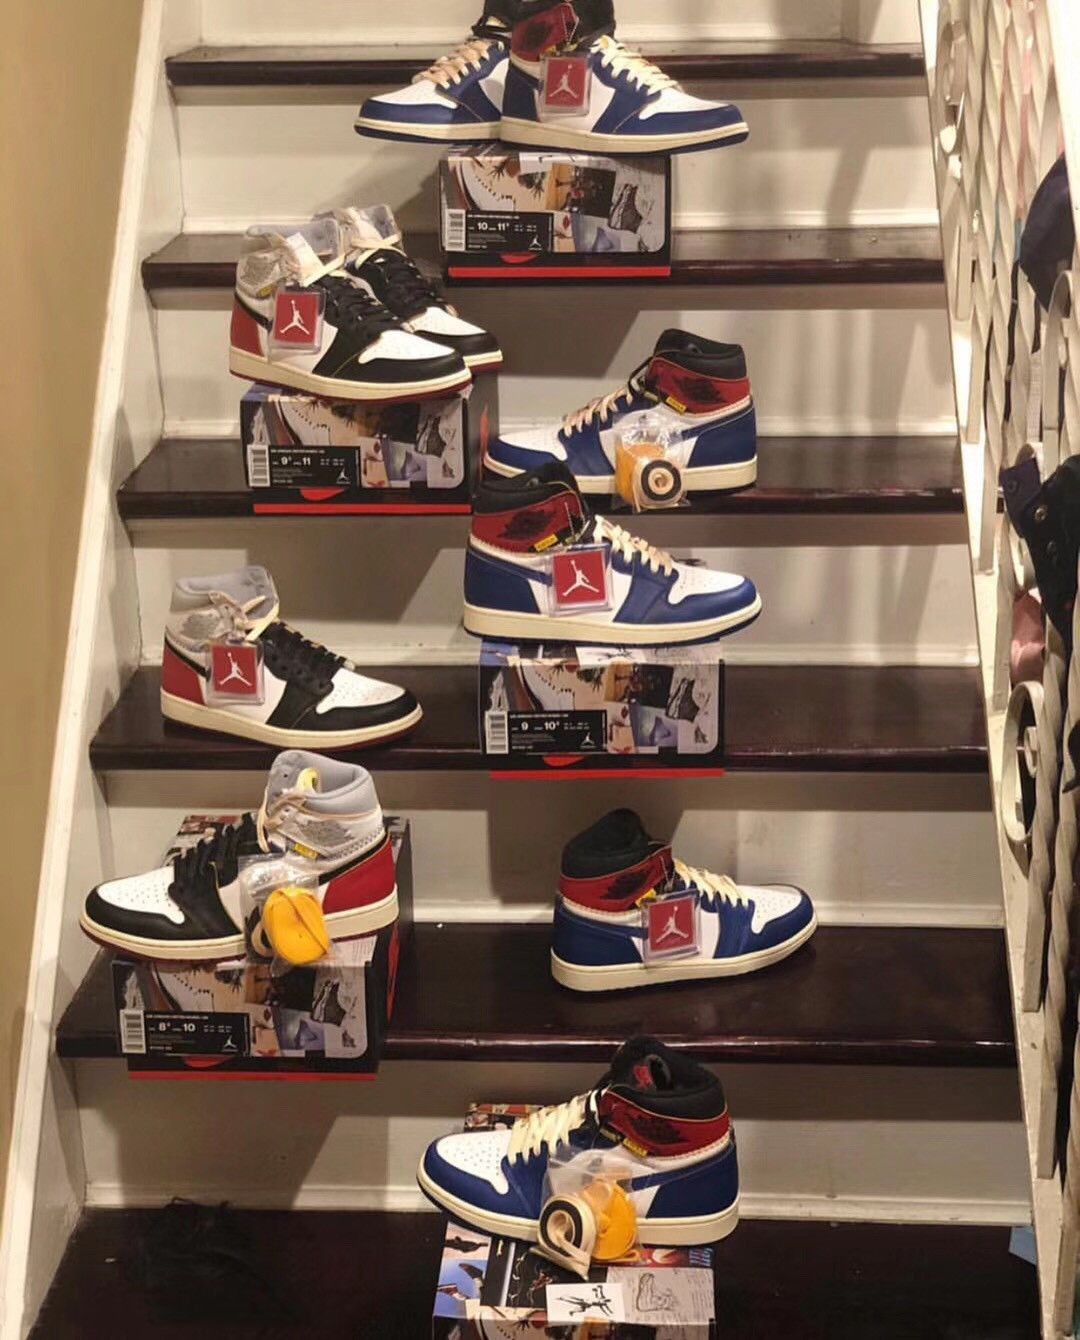 6642a81523a 2019 的 Union x Air Jordan 1 $ 50.00 ~ $ 150.00 We have everything ...